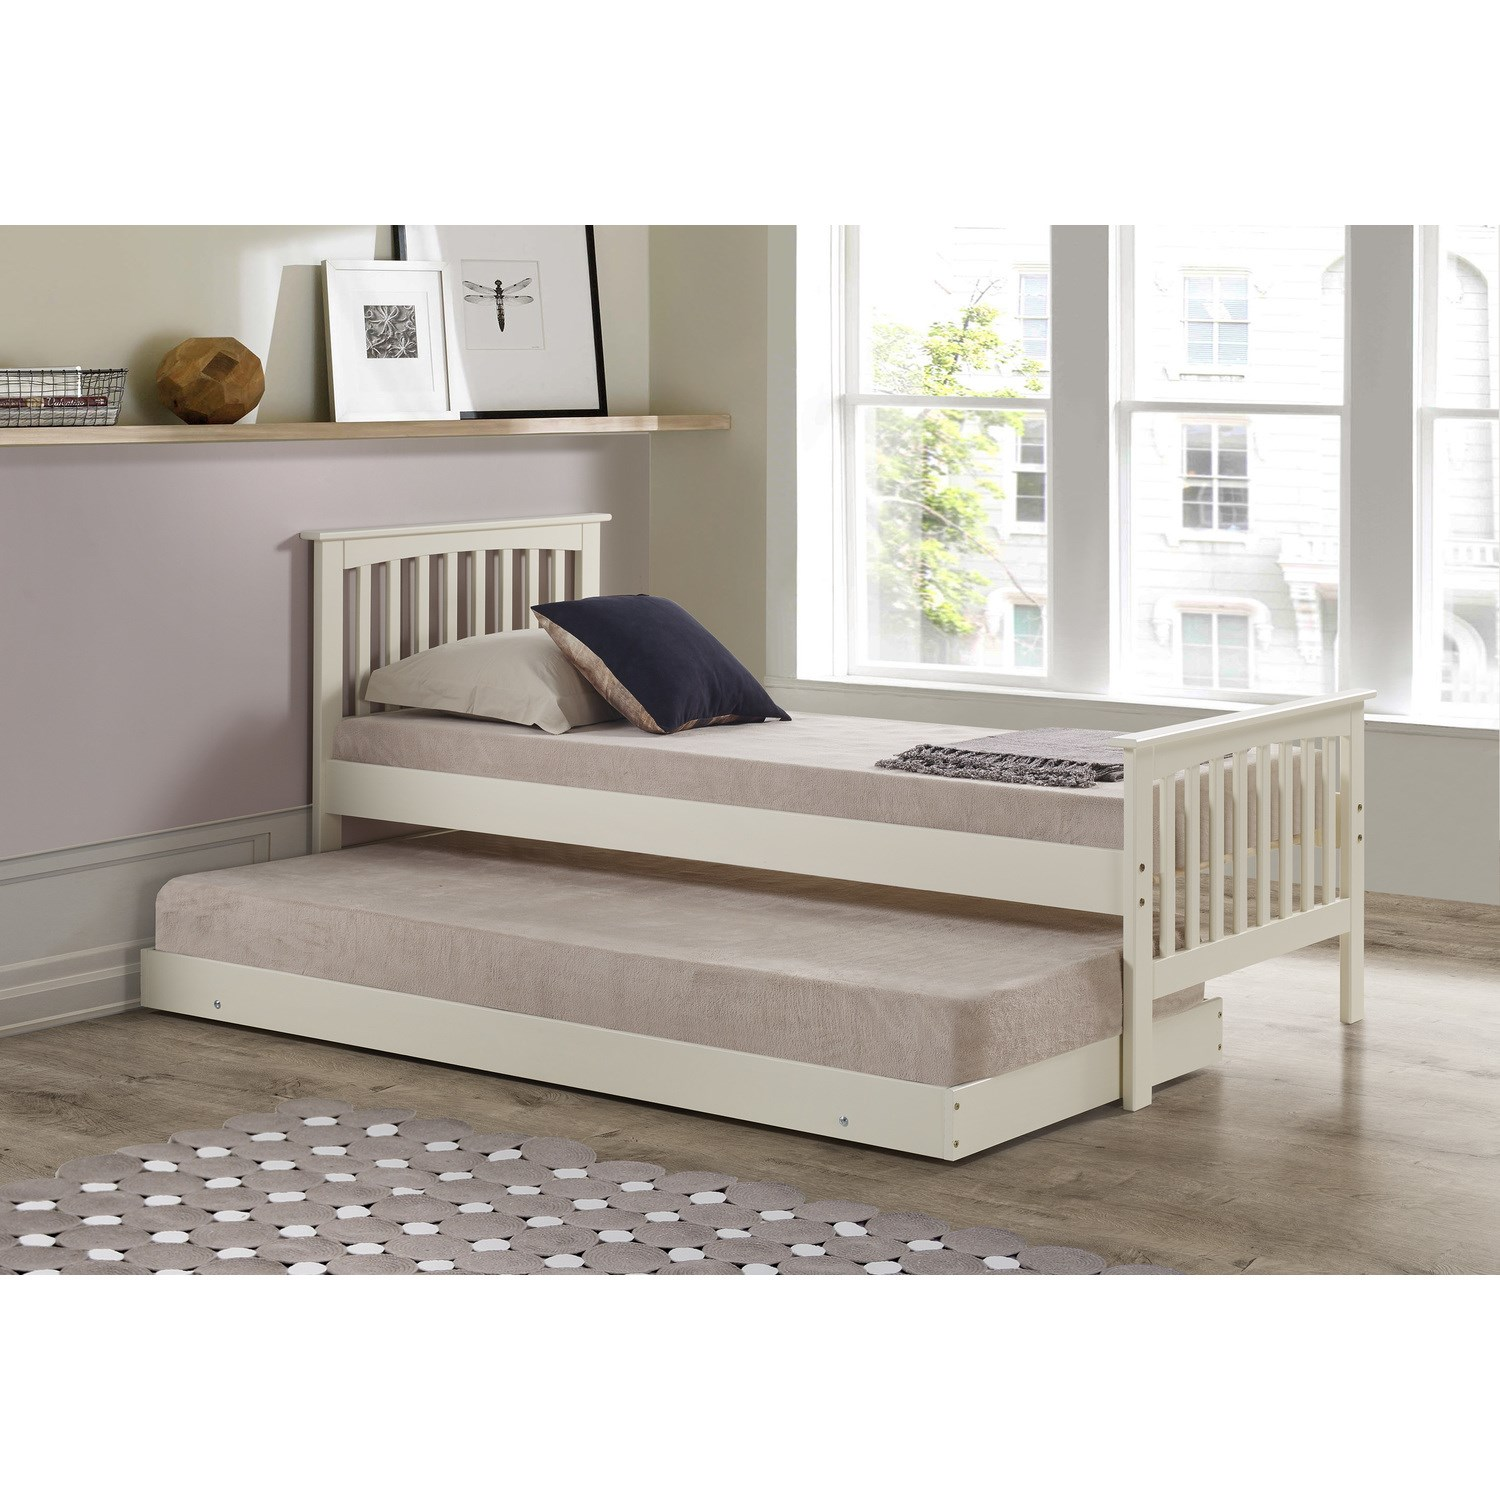 How To Raise Bed Under Trundle Bed